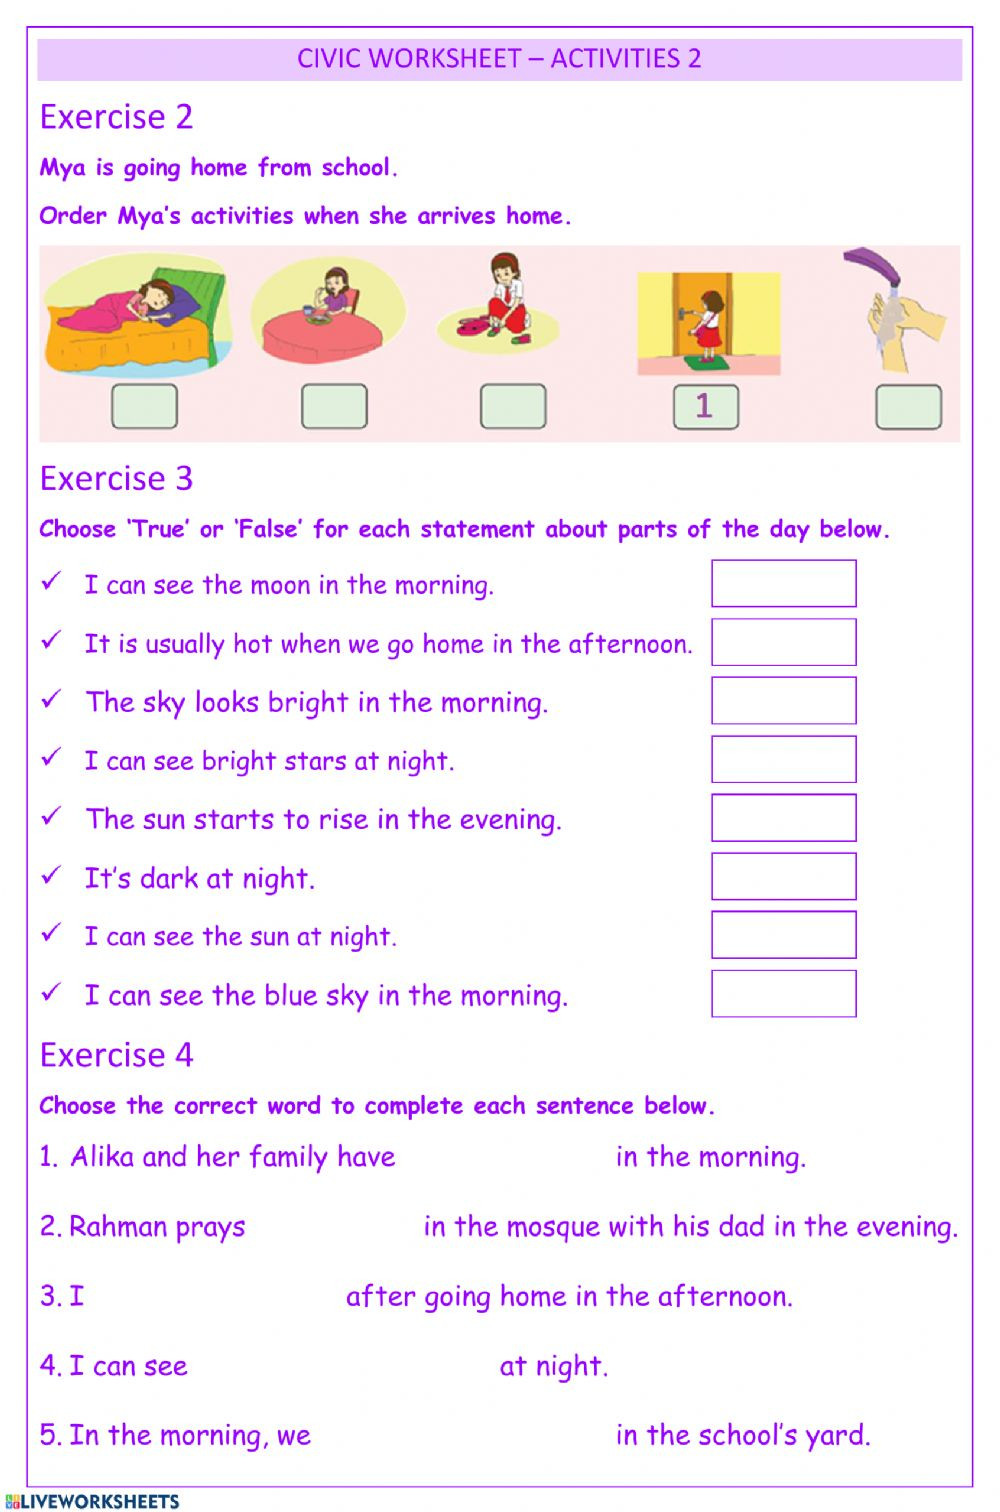 7th Grade Civics Worksheets Civics Activities2 Worksheet